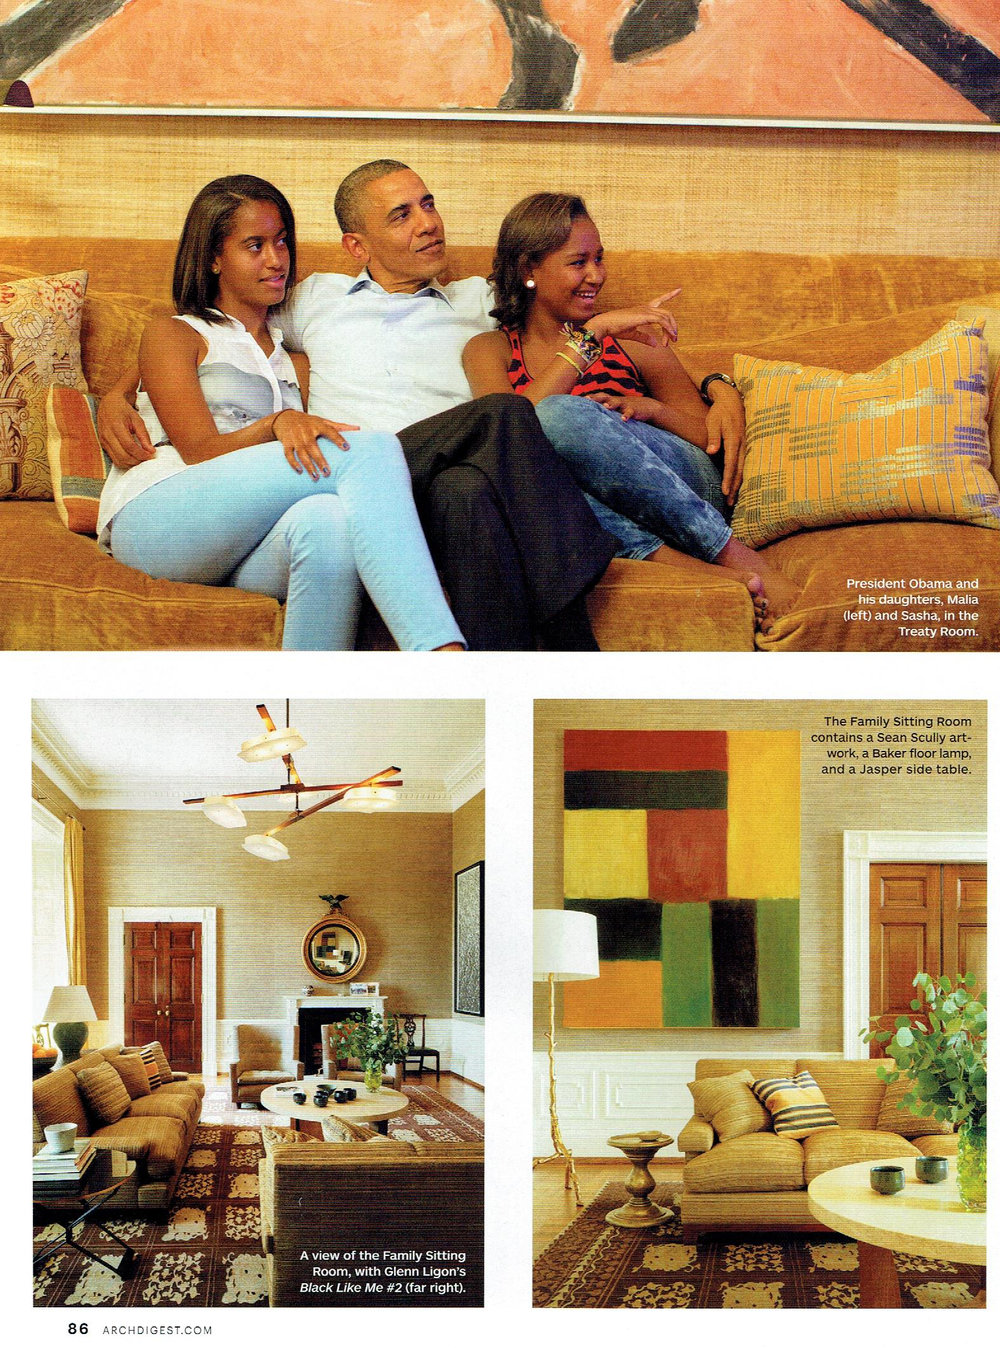 Architechtural Digest December 2016 Carolina Irving Barack Obama 001.jpg